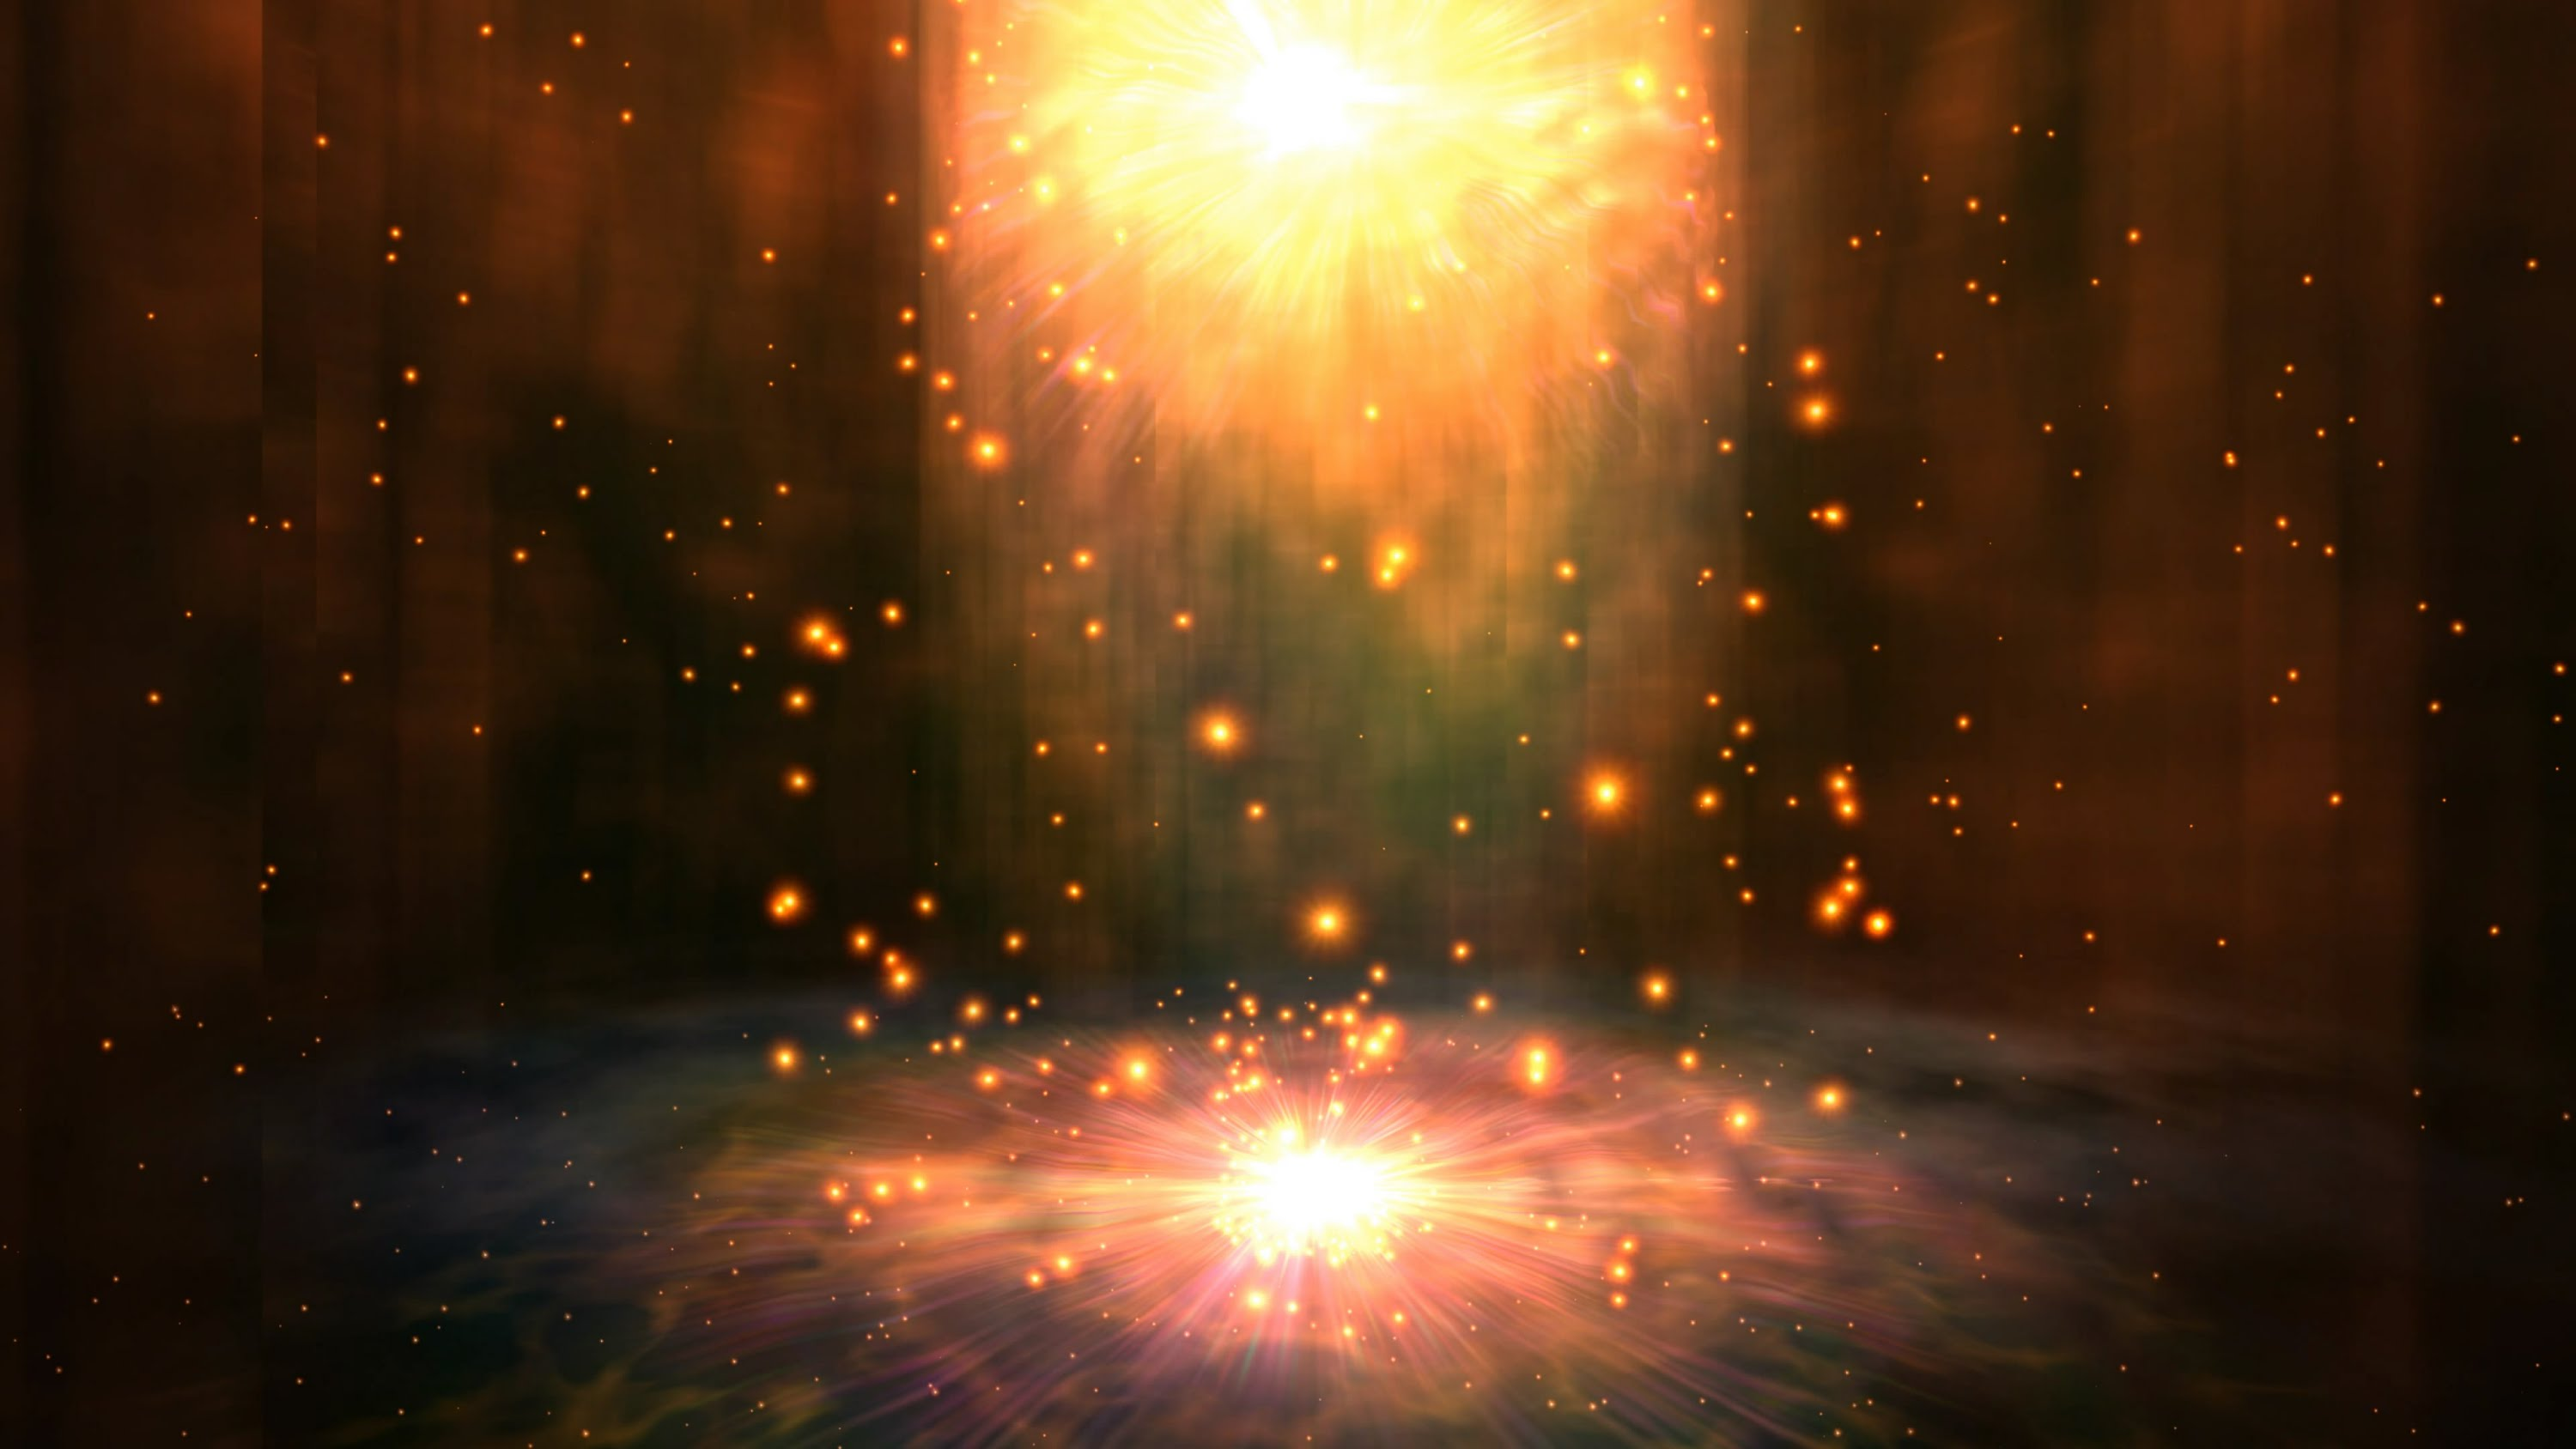 4K Magical Ground 2160p Beautiful Animated Wallpaper HD Background 3000x1688